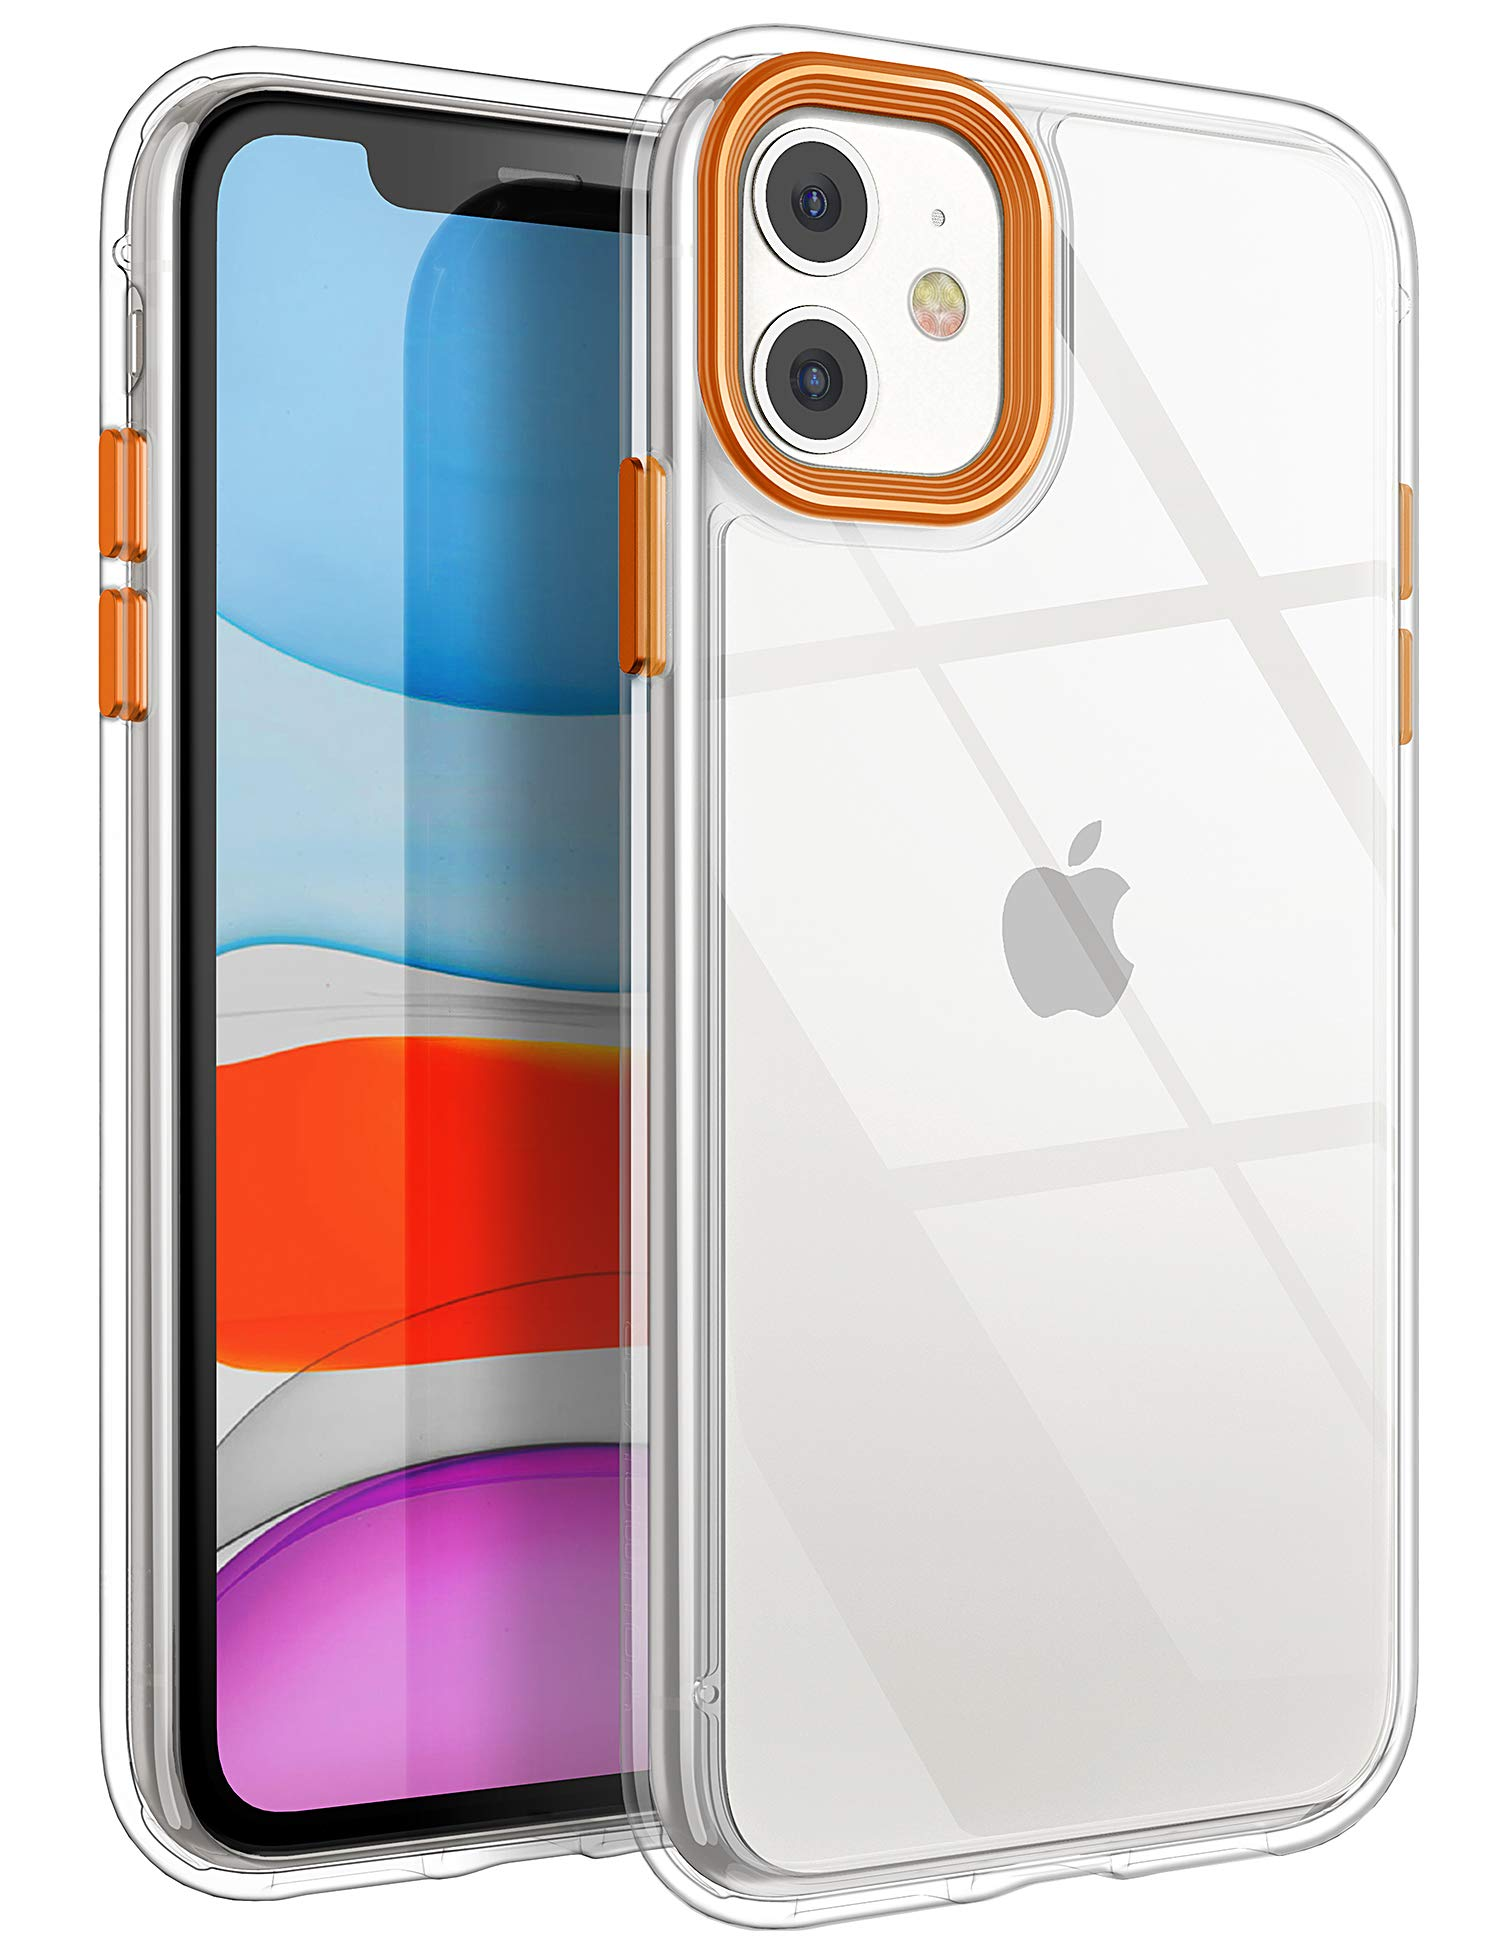 YOUMAKER Stylish Crystal Clear Case for iPhone 11, Anti-Scratch Shock Absorption Slim Fit Drop Protection Premium Bumper Cover Case for iPhone 11 6.1 inch (2019) - Clear/Orange